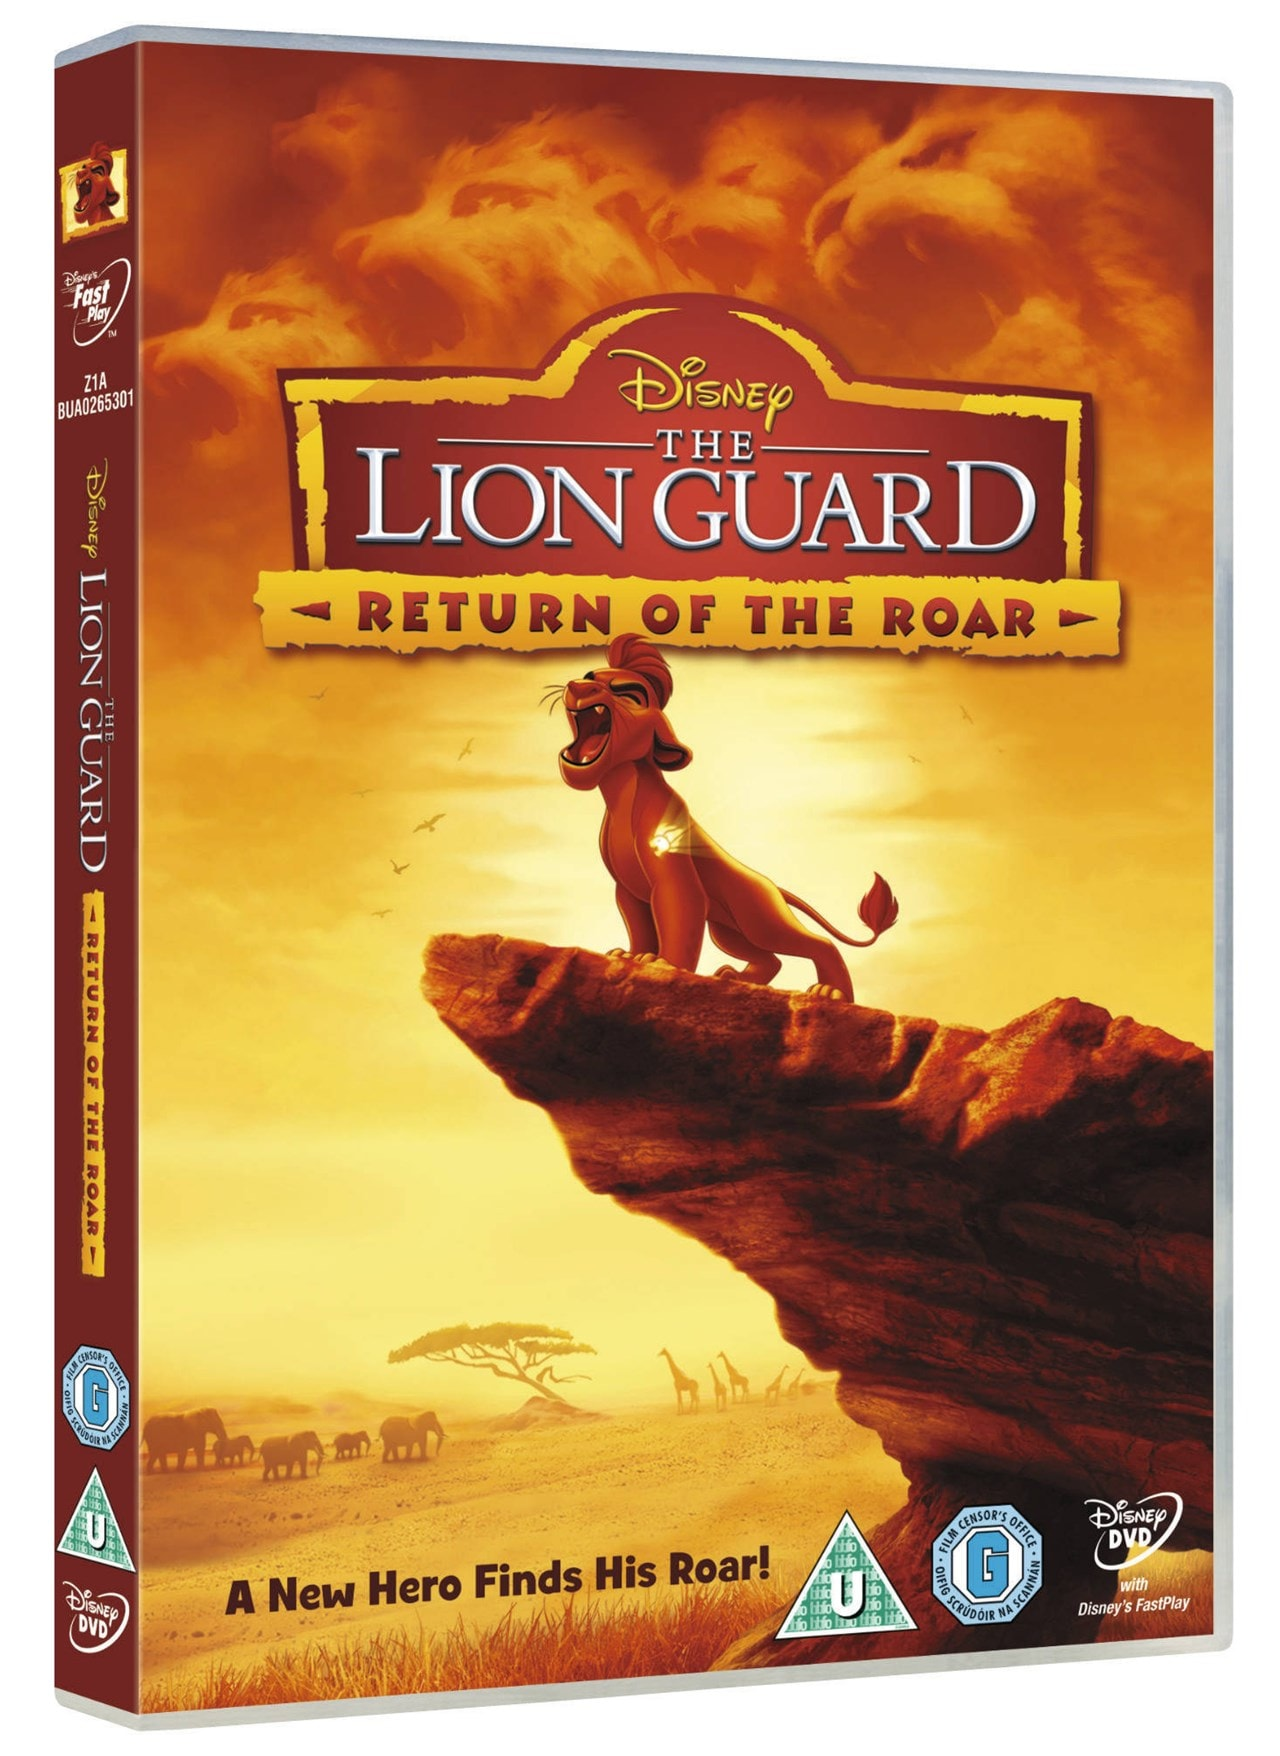 The Lion Guard - Return of the Roar - 2